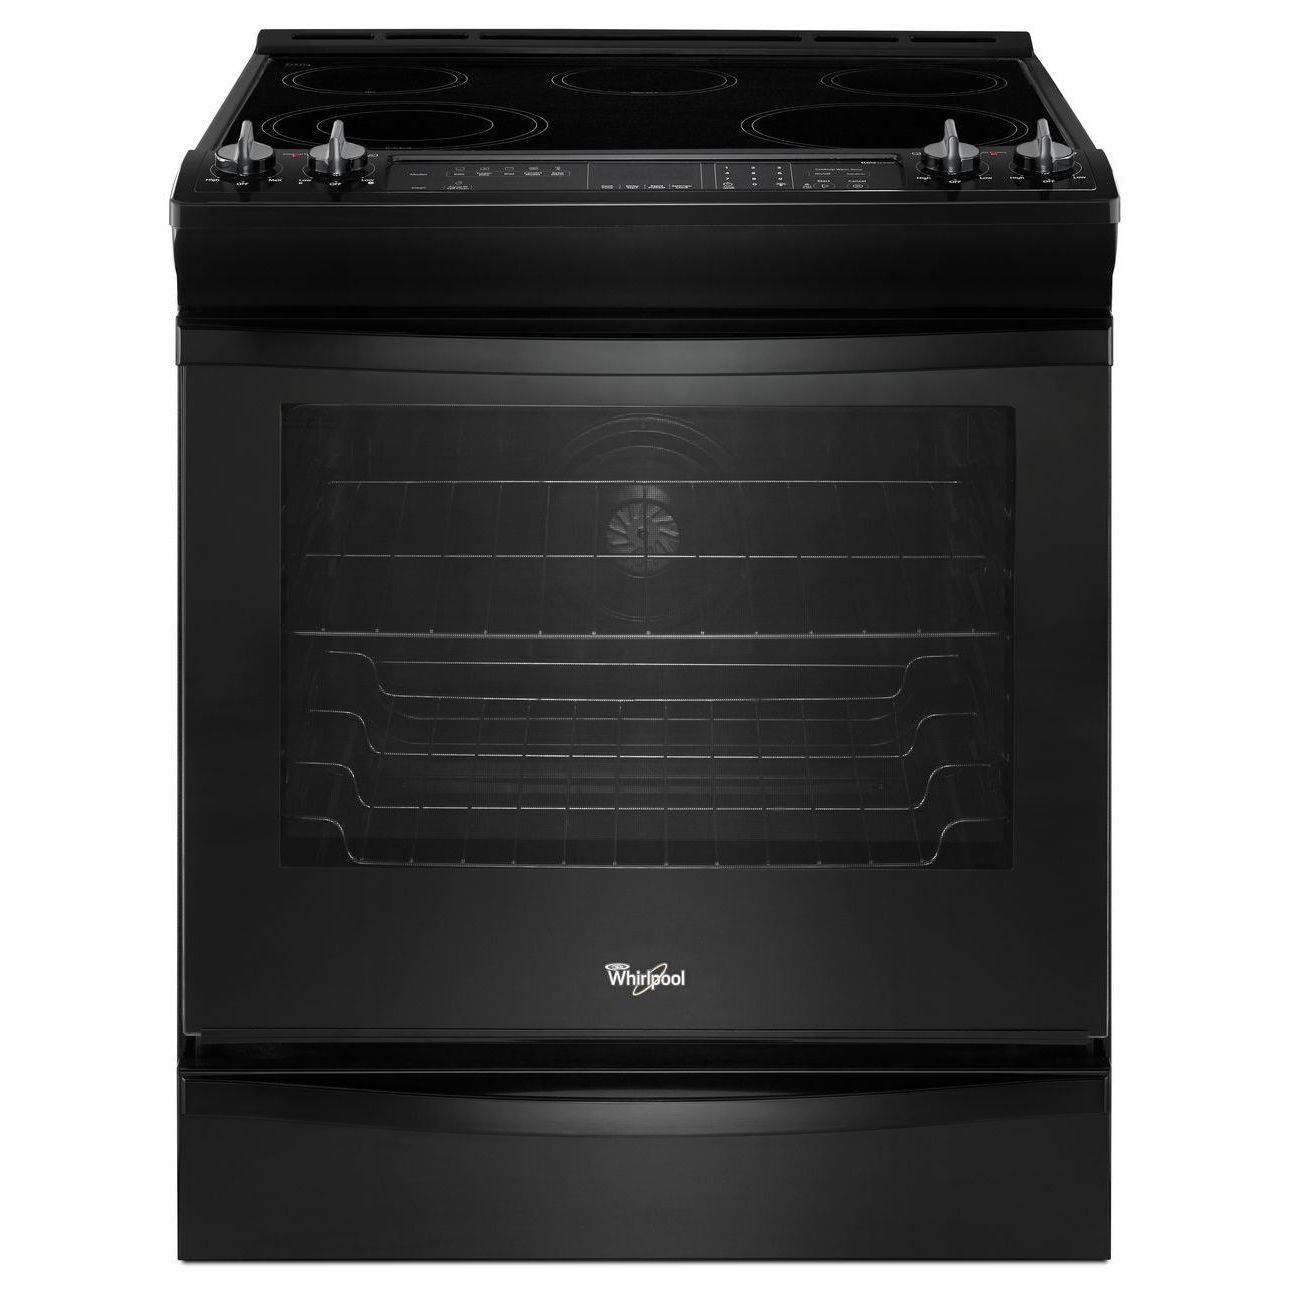 Whirlpool 30 Inch Slide In Smoothtop Electric Range Free Shipping Today 11685374